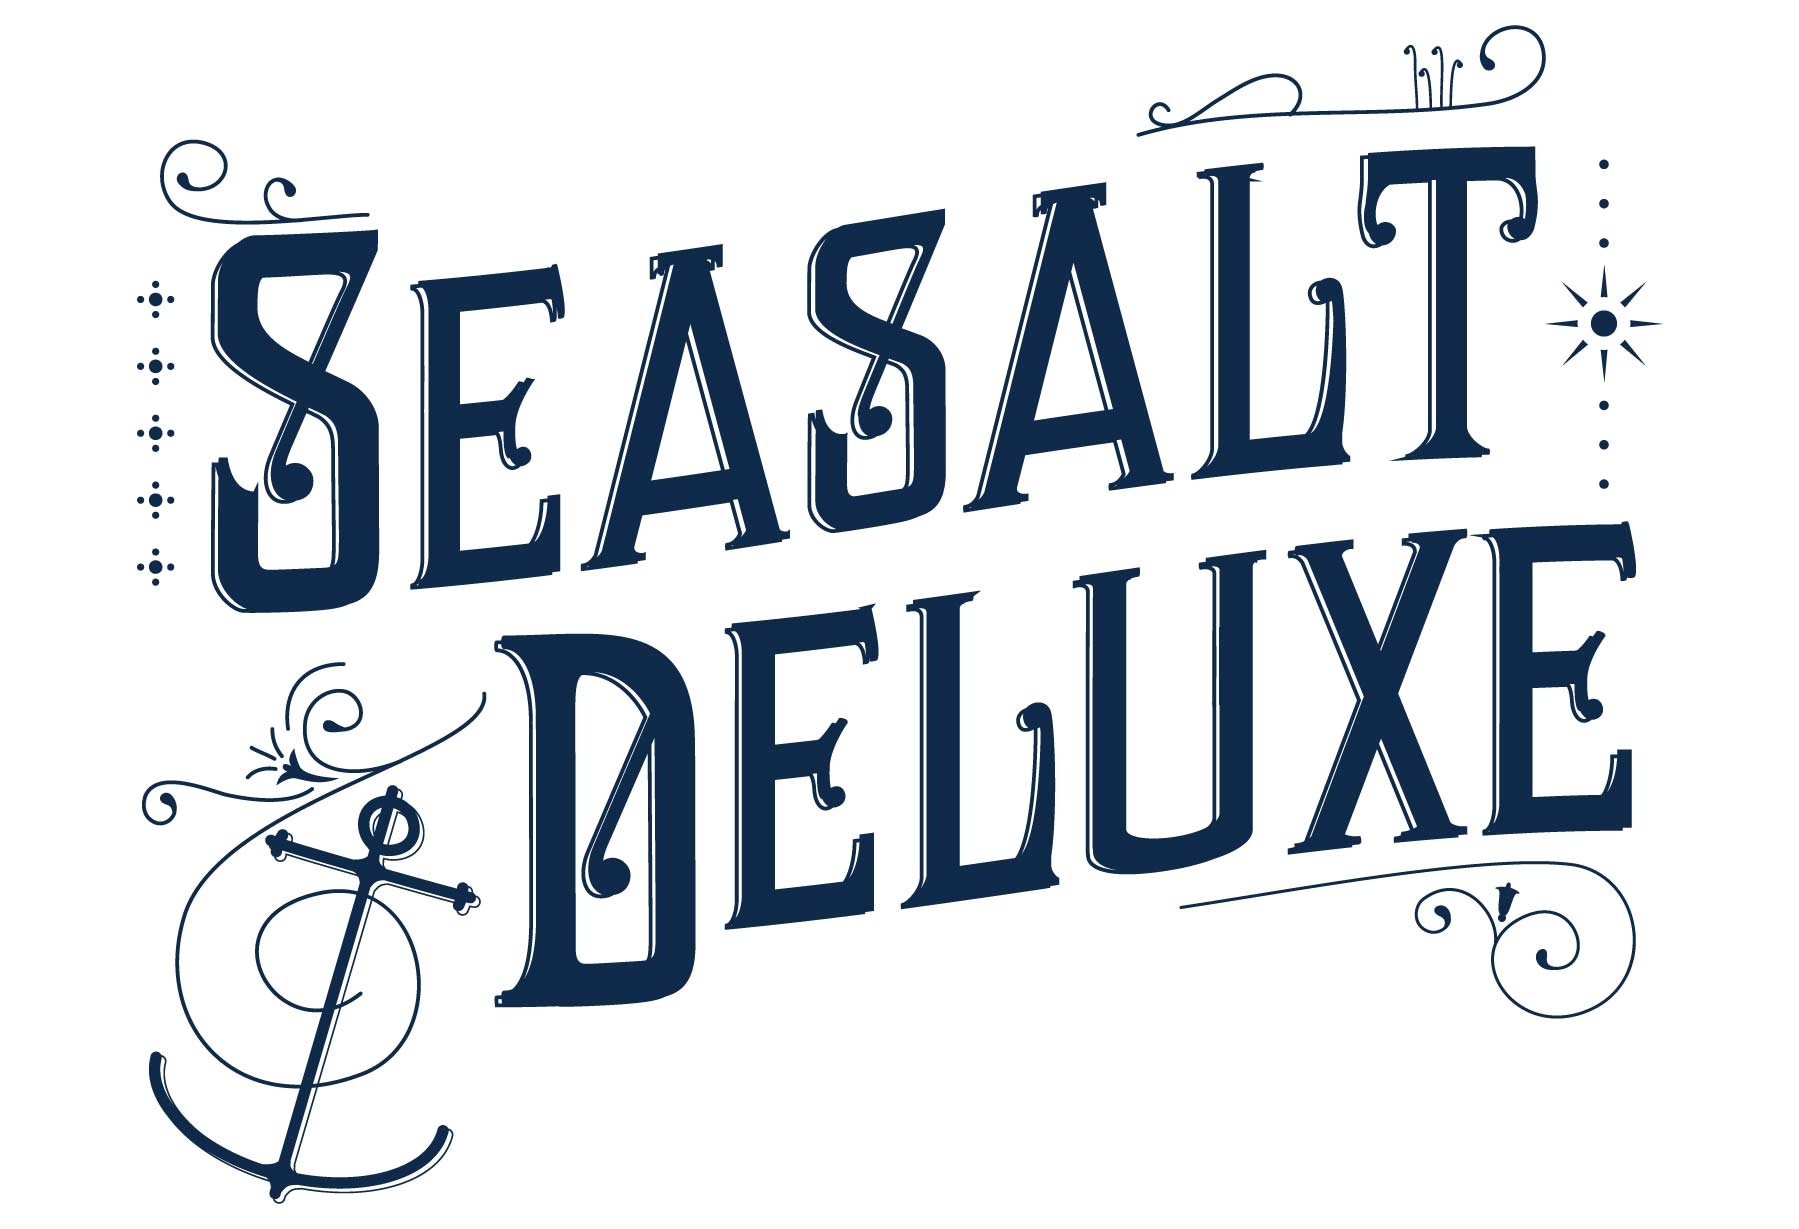 Custom Victoriana Lettering for Seasalt's Luxury range, Seasalt Deluxe, by Elly Jahnz